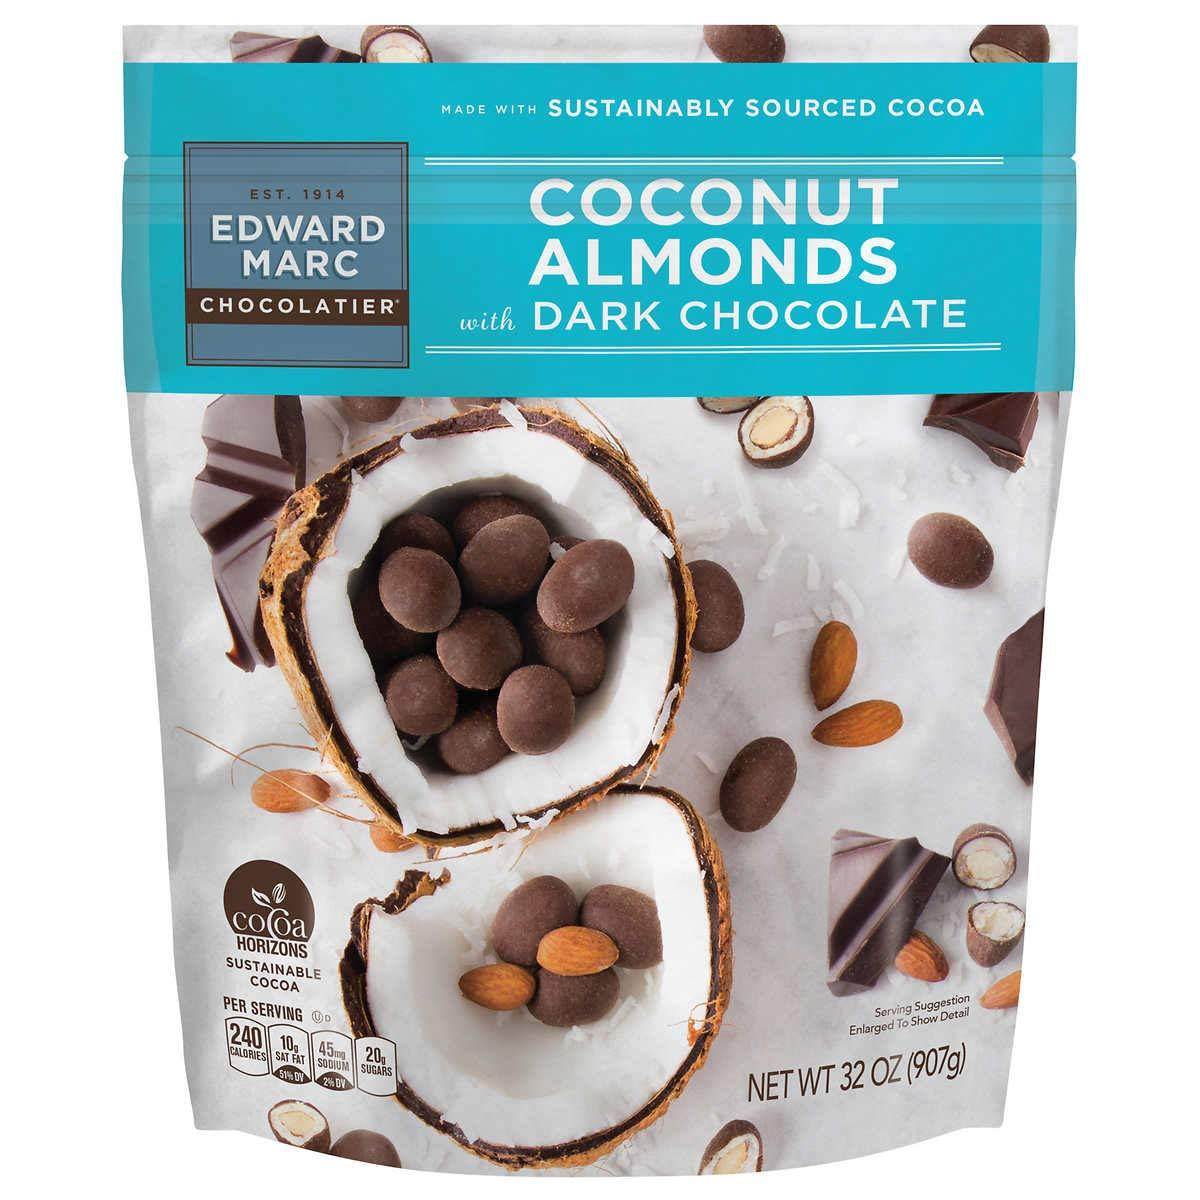 Edward Marc Chocolatier Almonds Edward Marc Chocolatier Coconut Almonds 32 Ounce